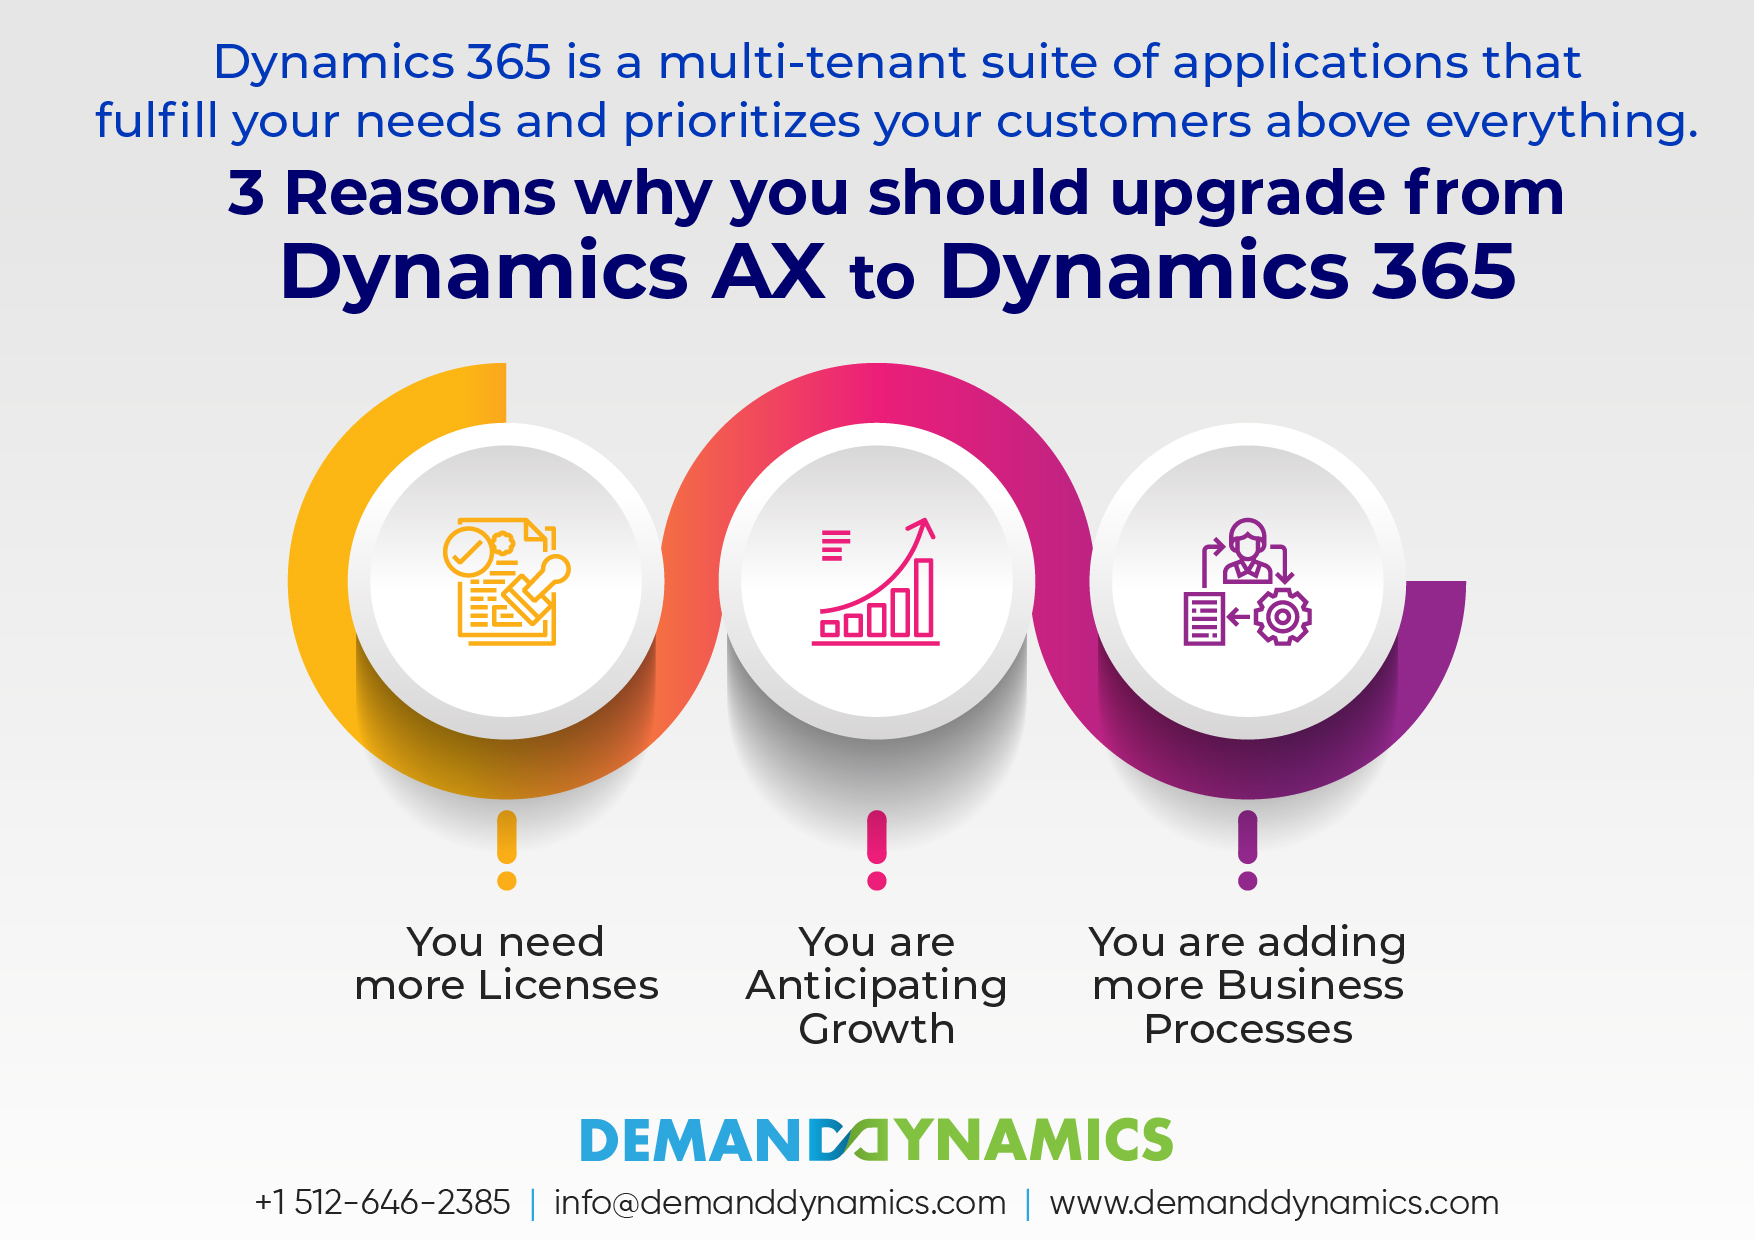 Upgrading to Dynamics 365